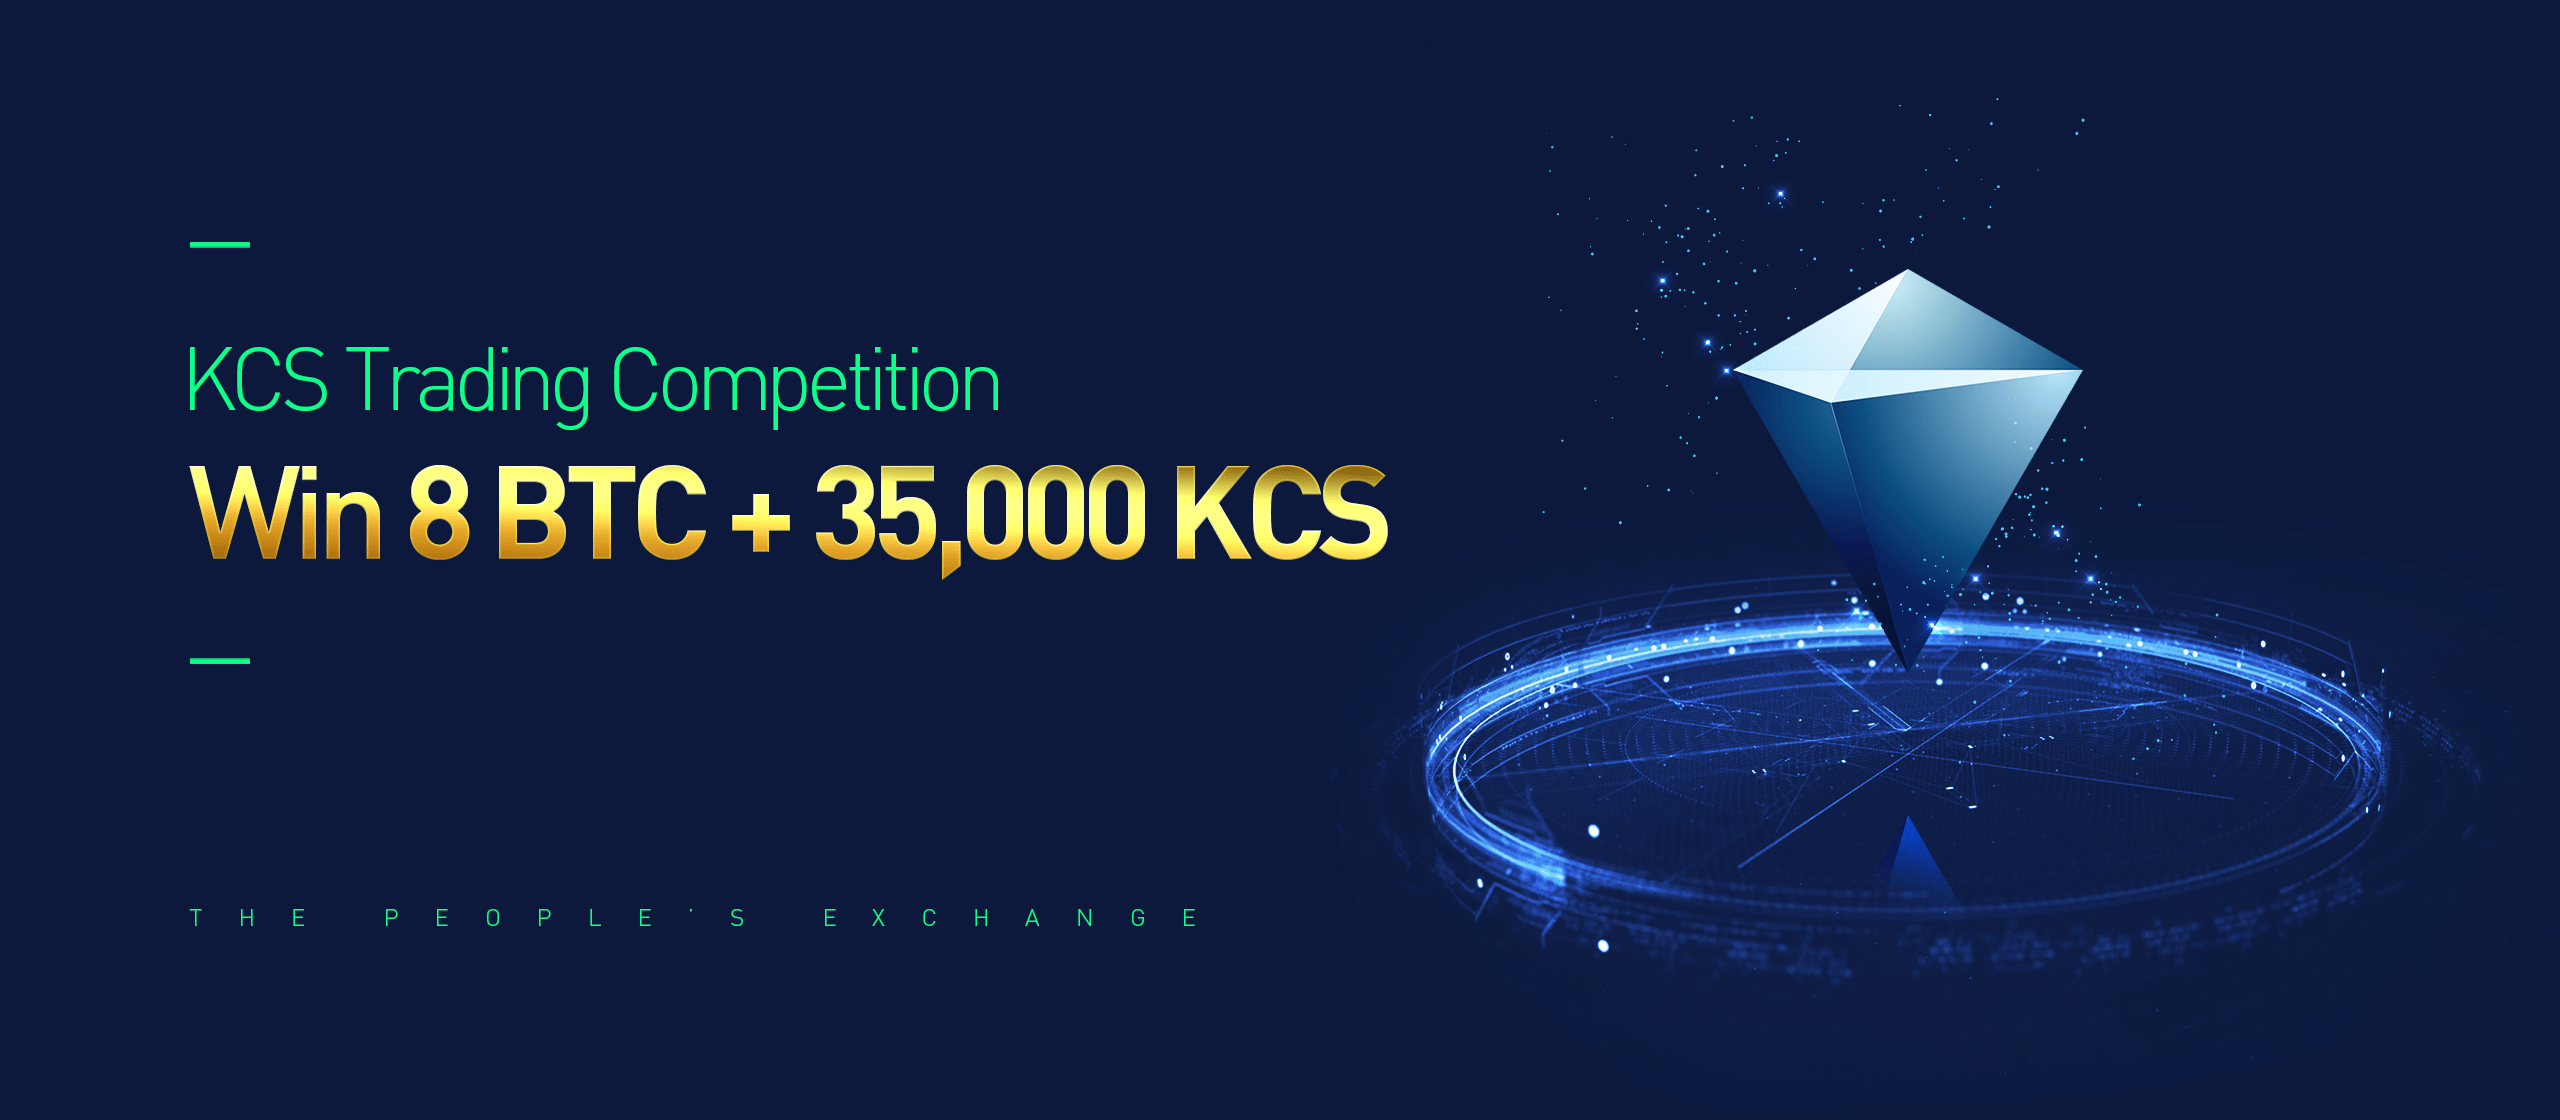 Trading Competition on KuCoin - Claim a share of 8 BTC + 35,000 KCS tokens.